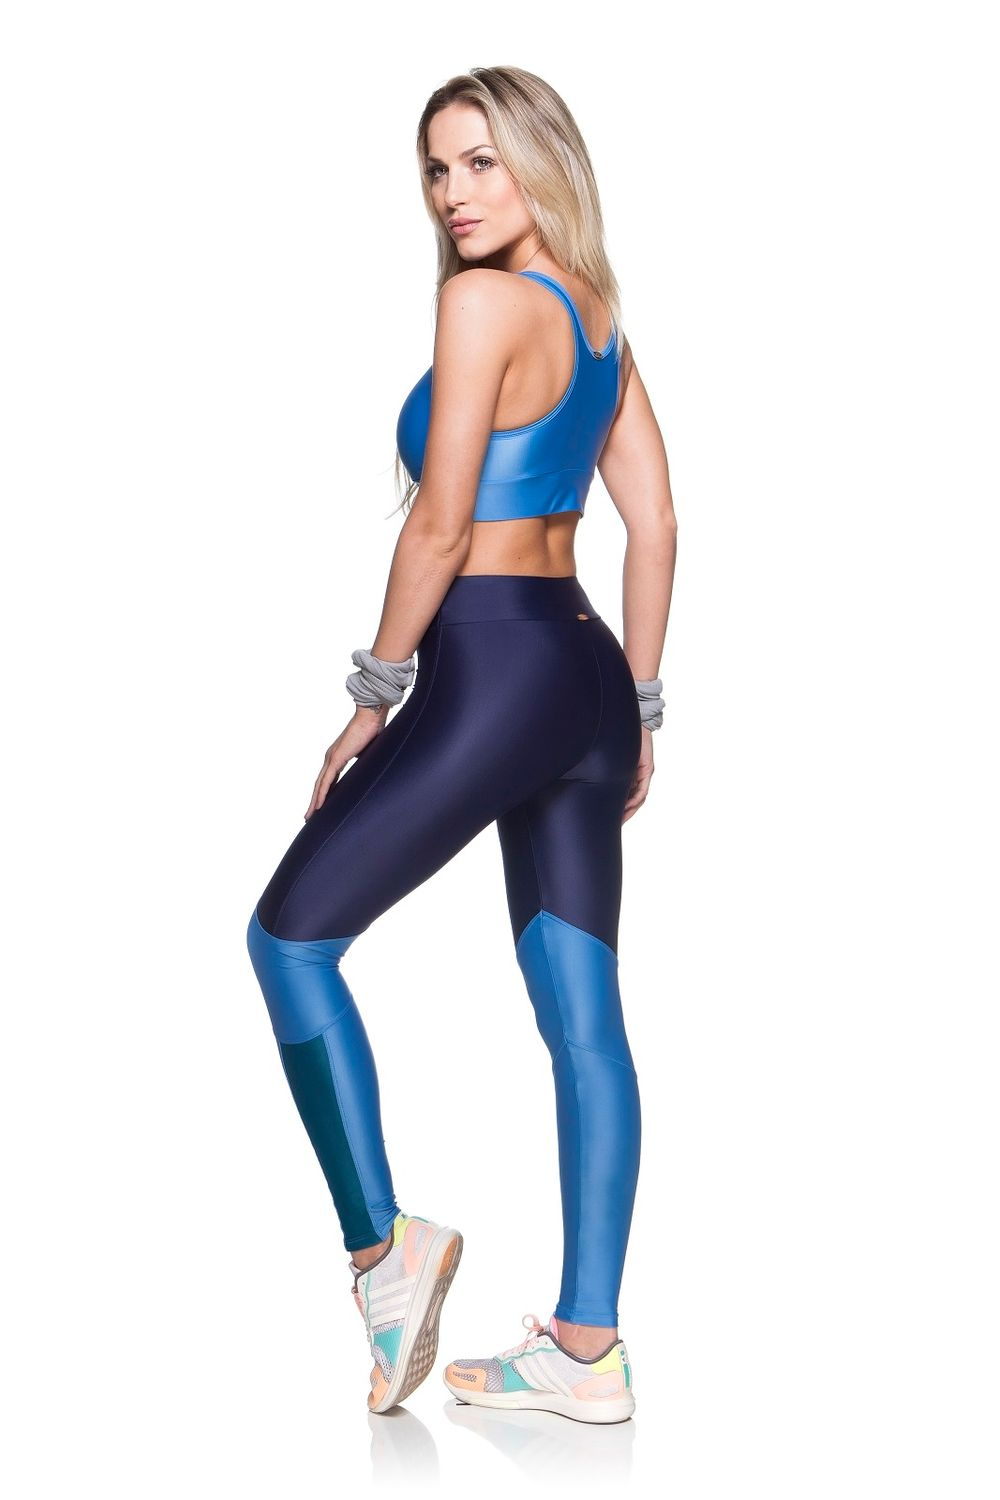 top-fitness-ju-new-azul-4-